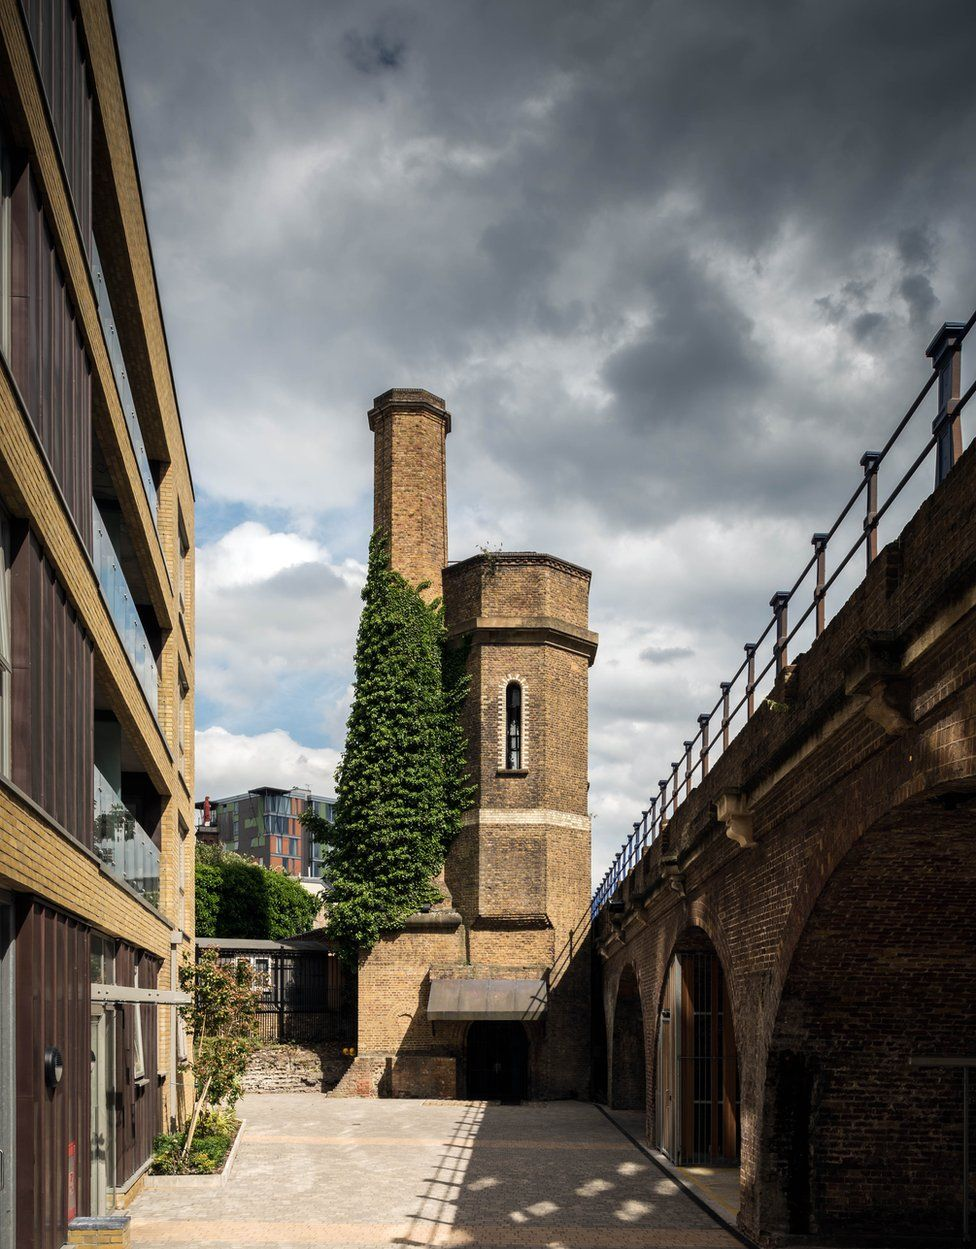 Accumulator Tower, Limehouse, Tower Hamlets